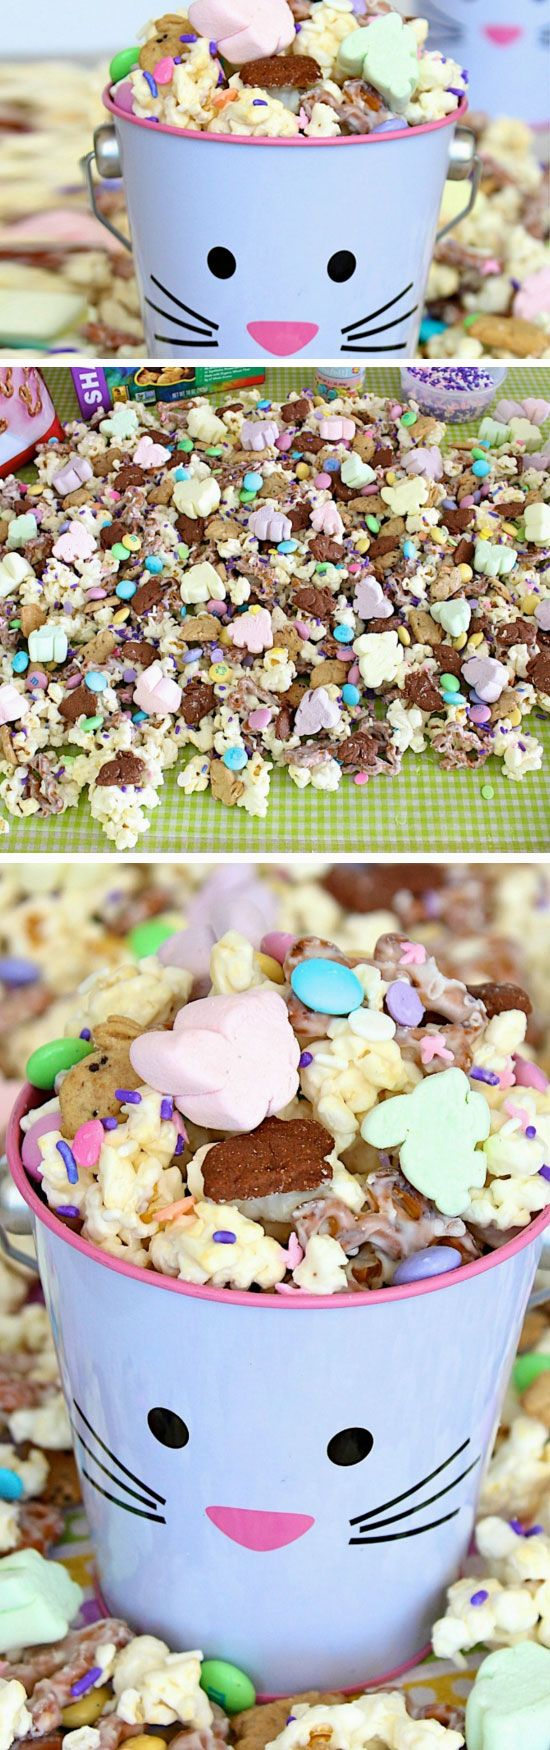 17 diy easter gift ideas for friends easter bunny and crafts 17 diy easter gift ideas for friends negle Image collections